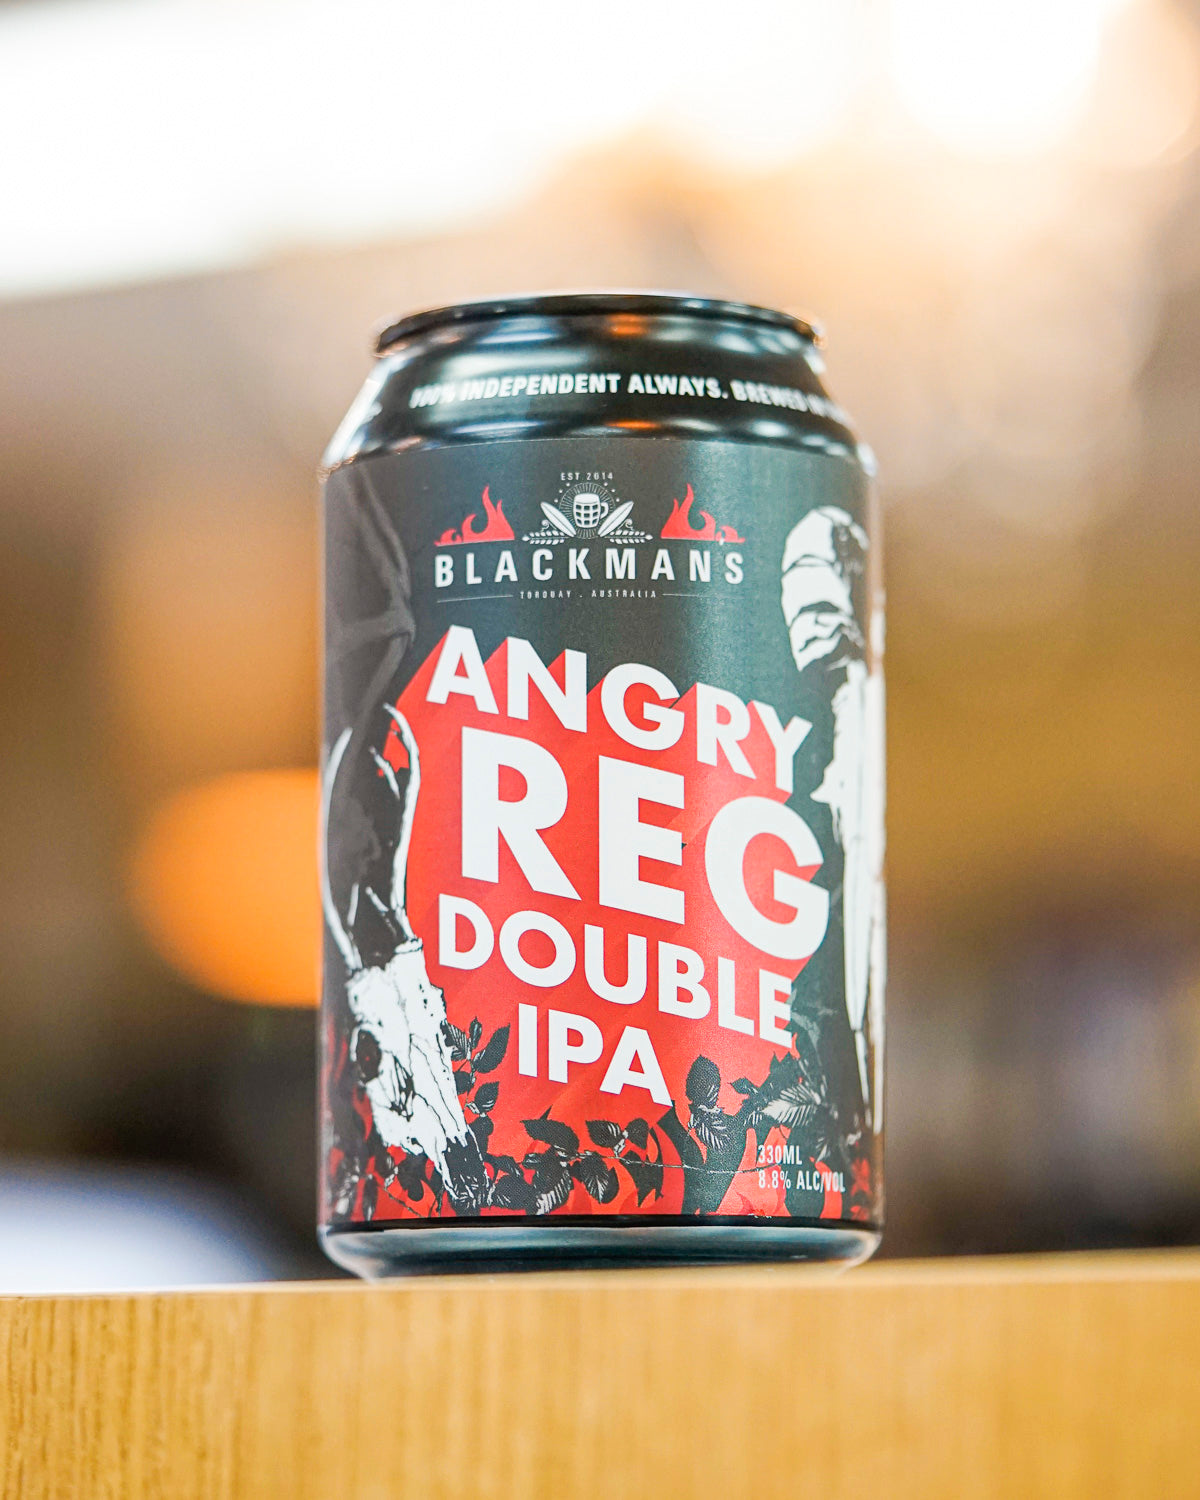 Blackmans Brewery 'Angry Reg' Double IPA 330mL